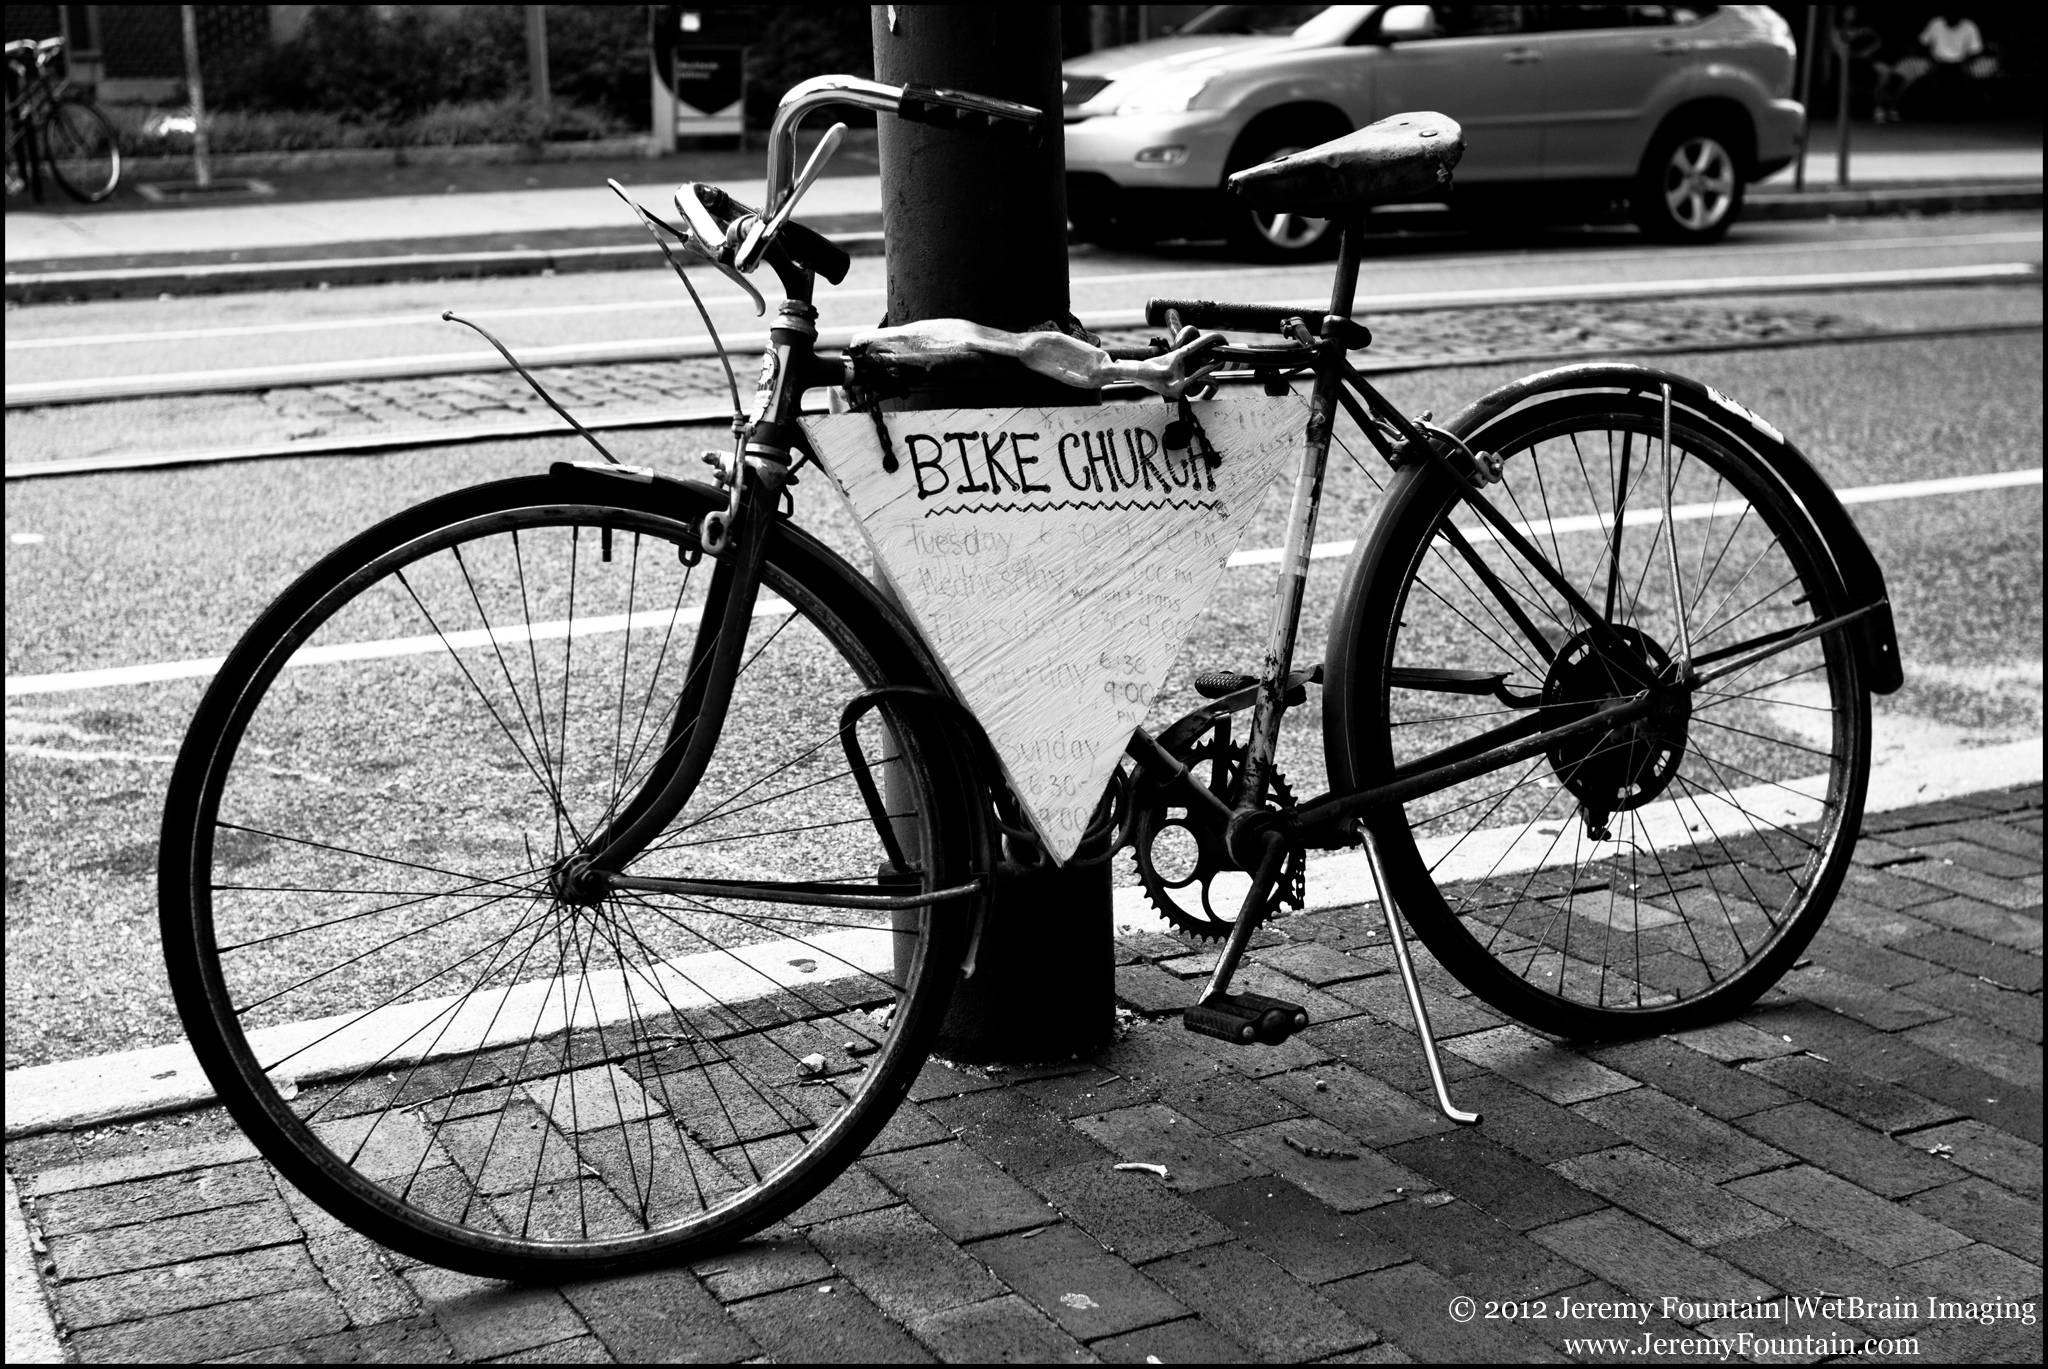 Bicycle, Photo by Jeremy Fountain